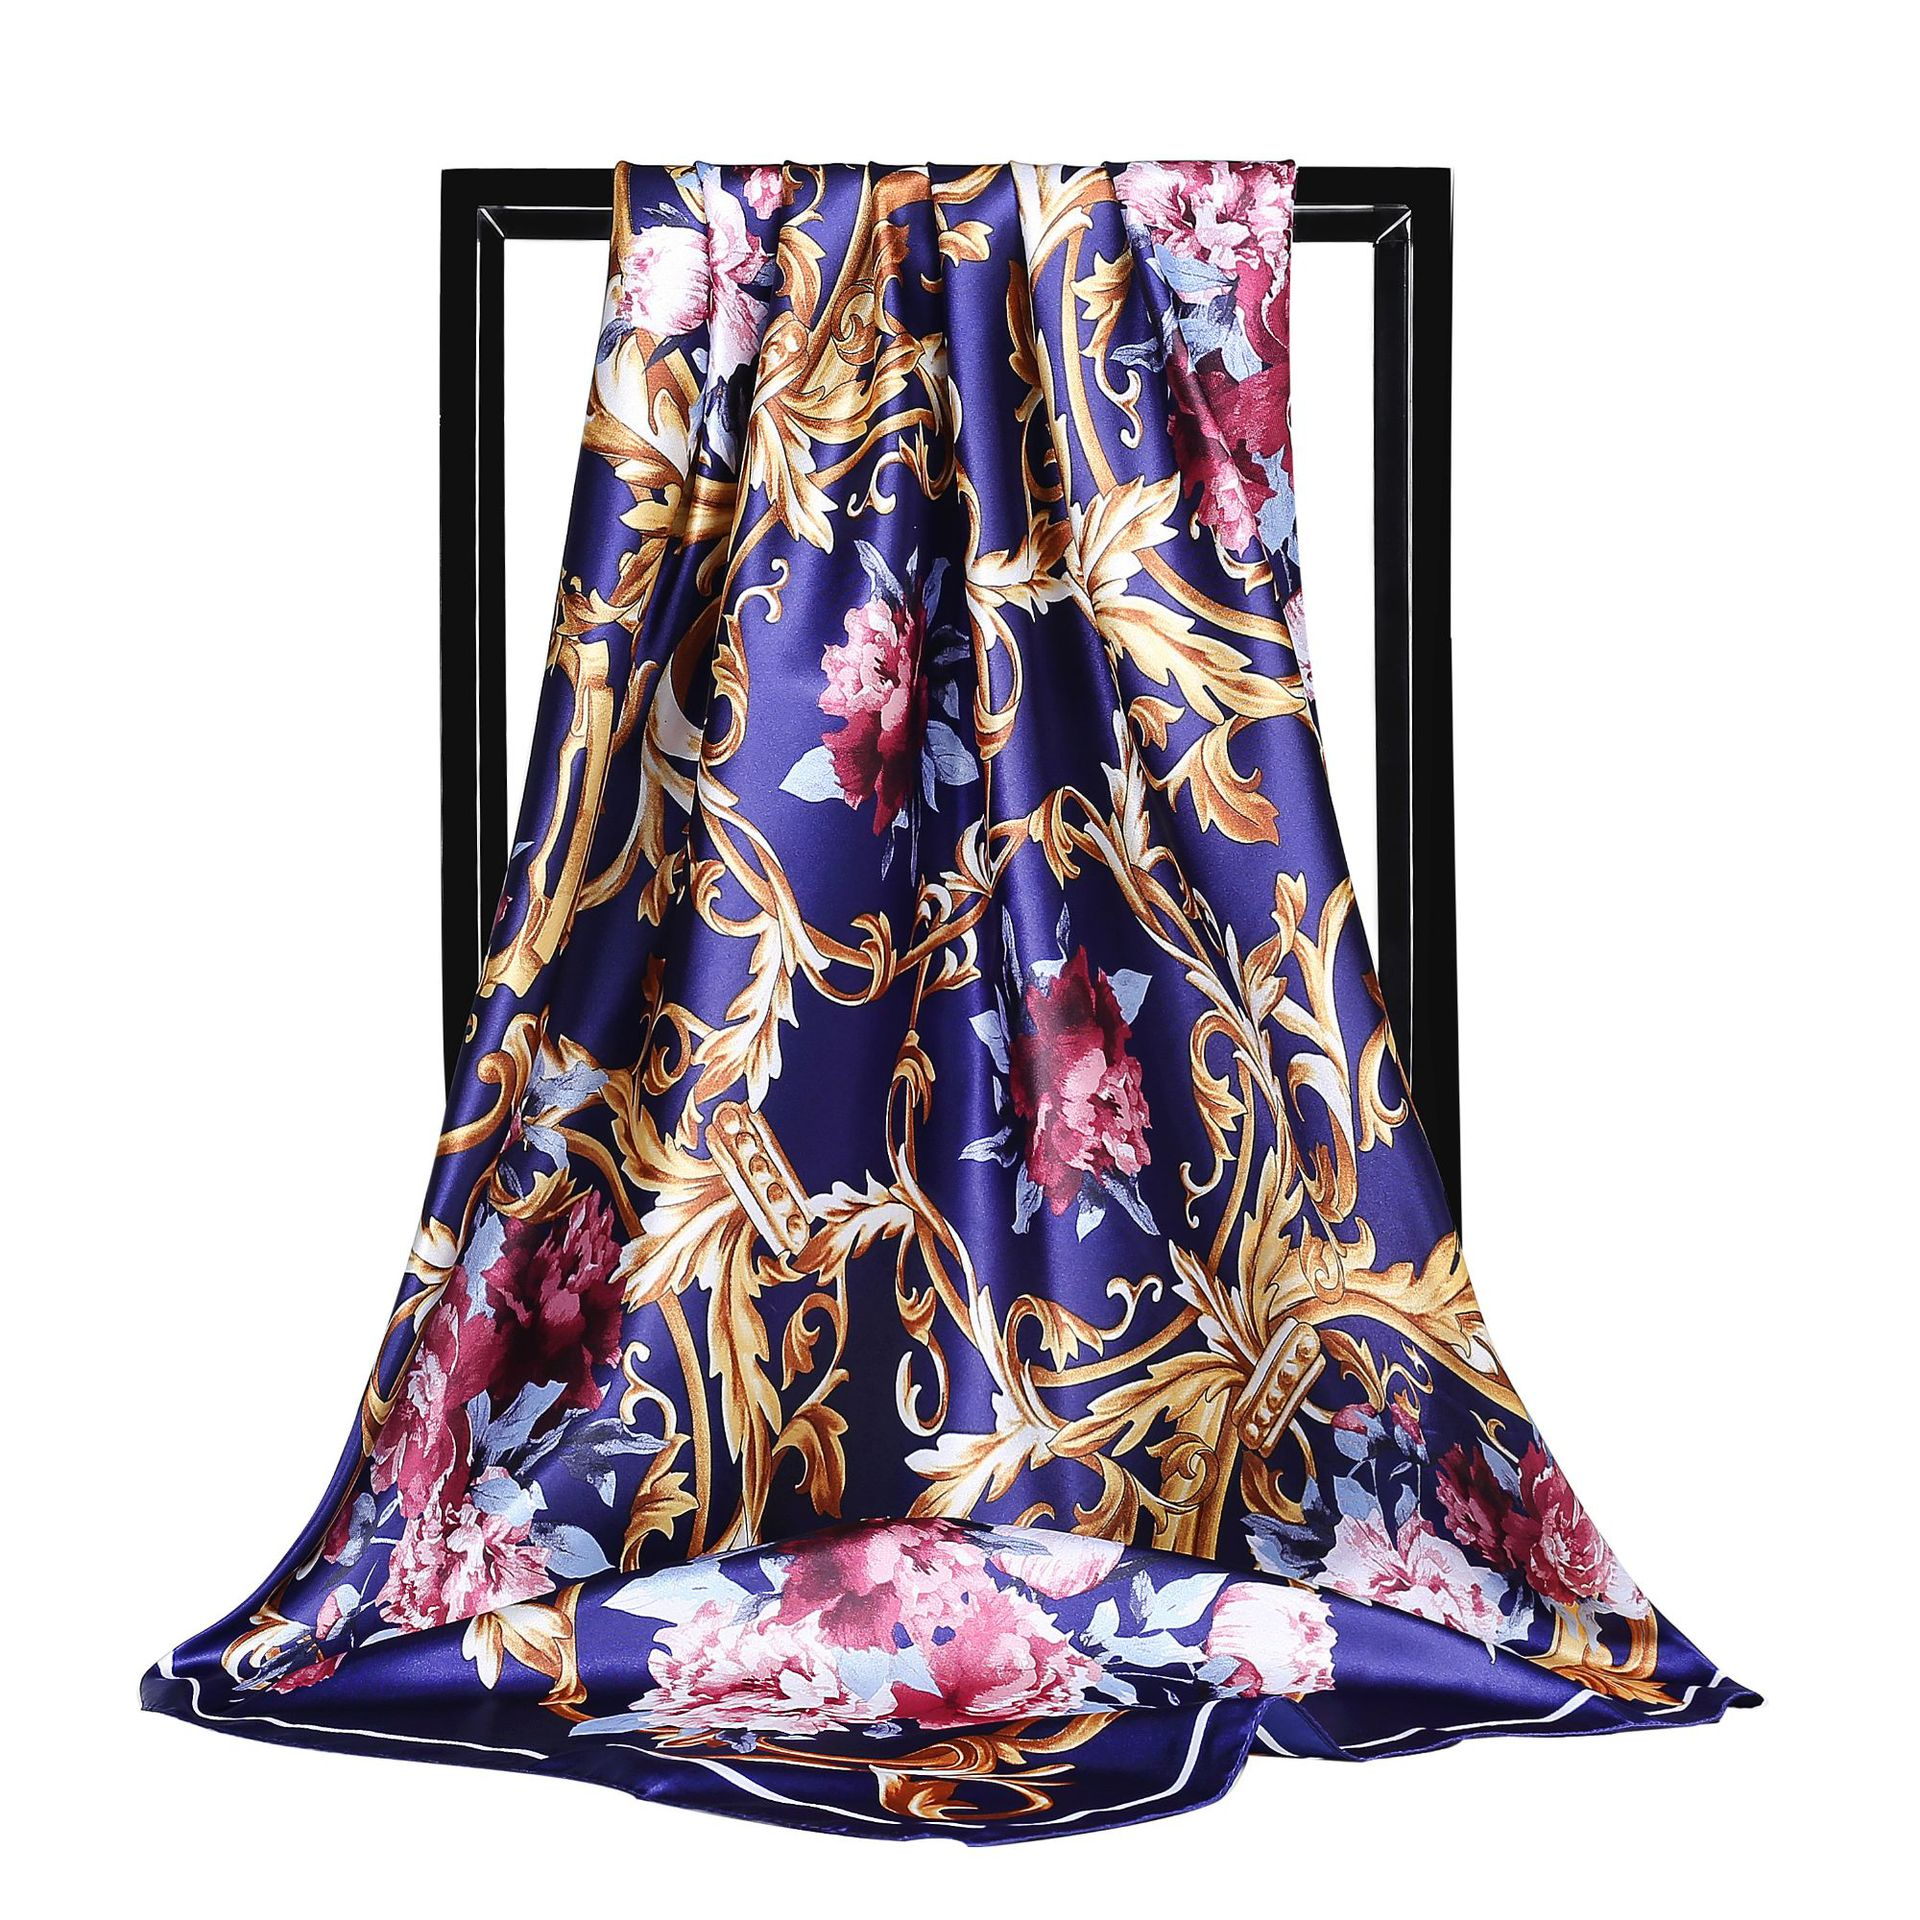 Hijab Scarf Women Luxury Brand Faux Silk Scarfs Foulard Flower Printed Square Head Wraps New Vintage Satin Shawl 90*90cm